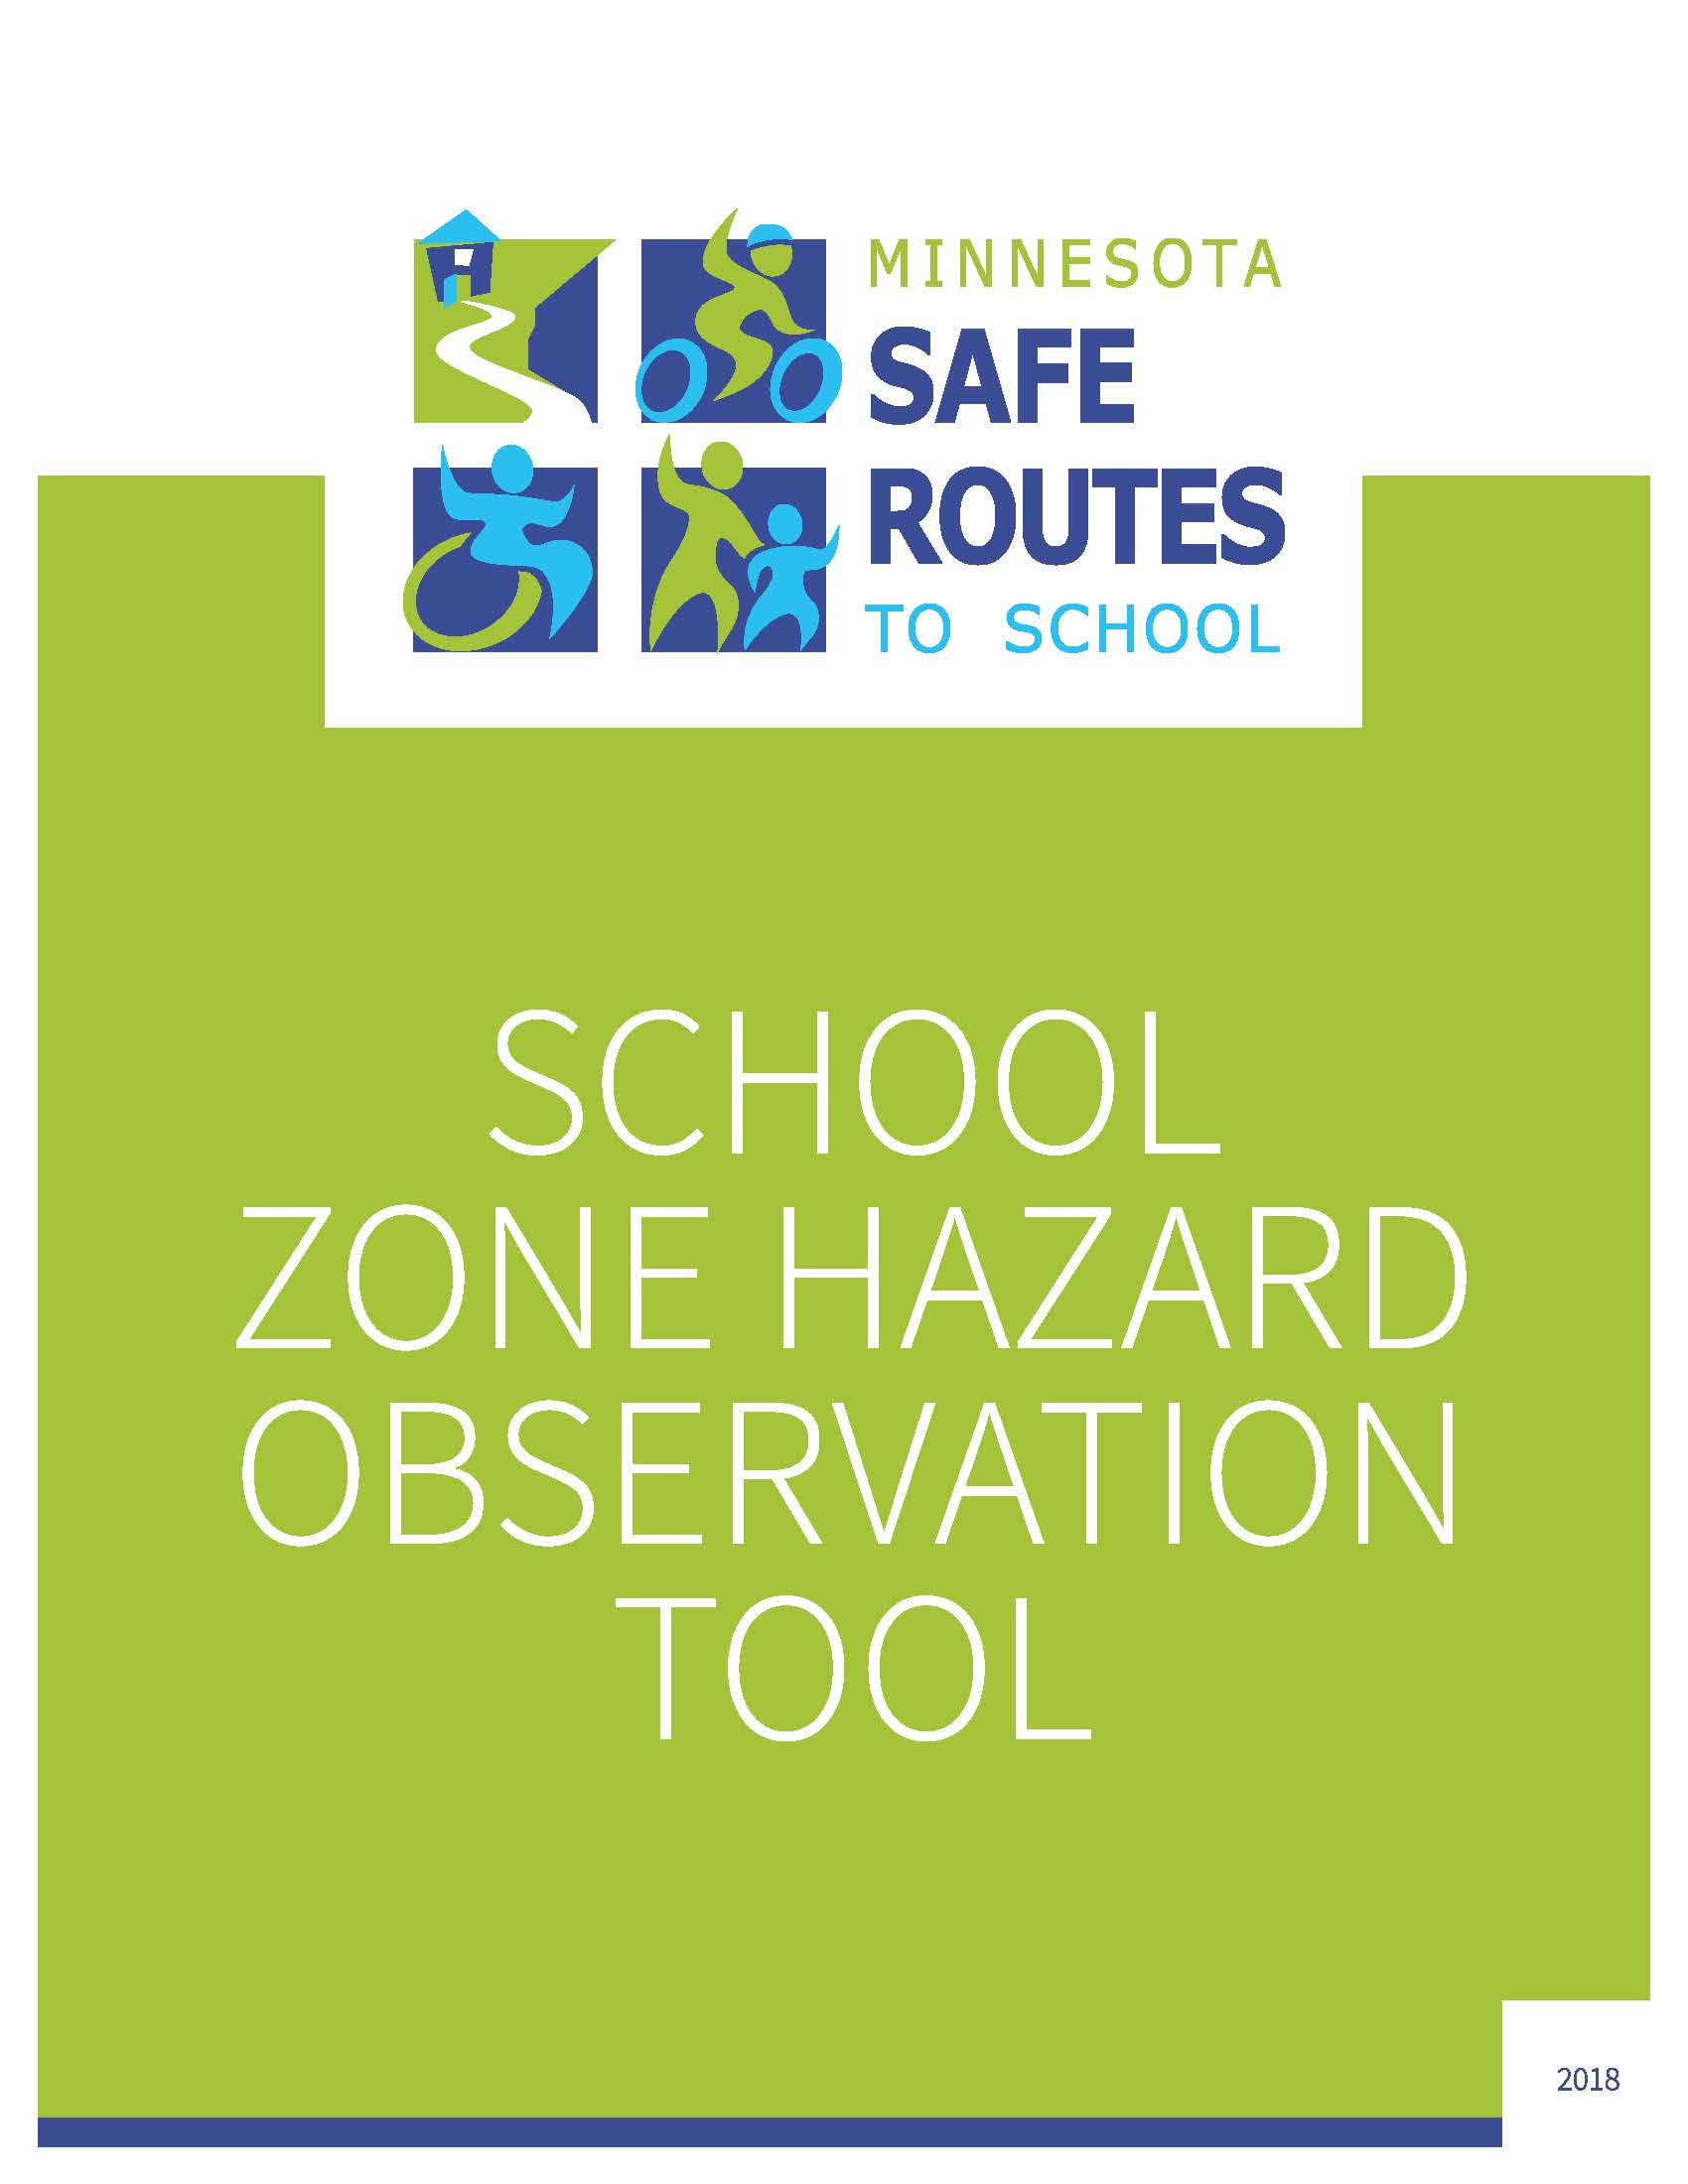 Cover of MnSRTS Hazard Observation Tool